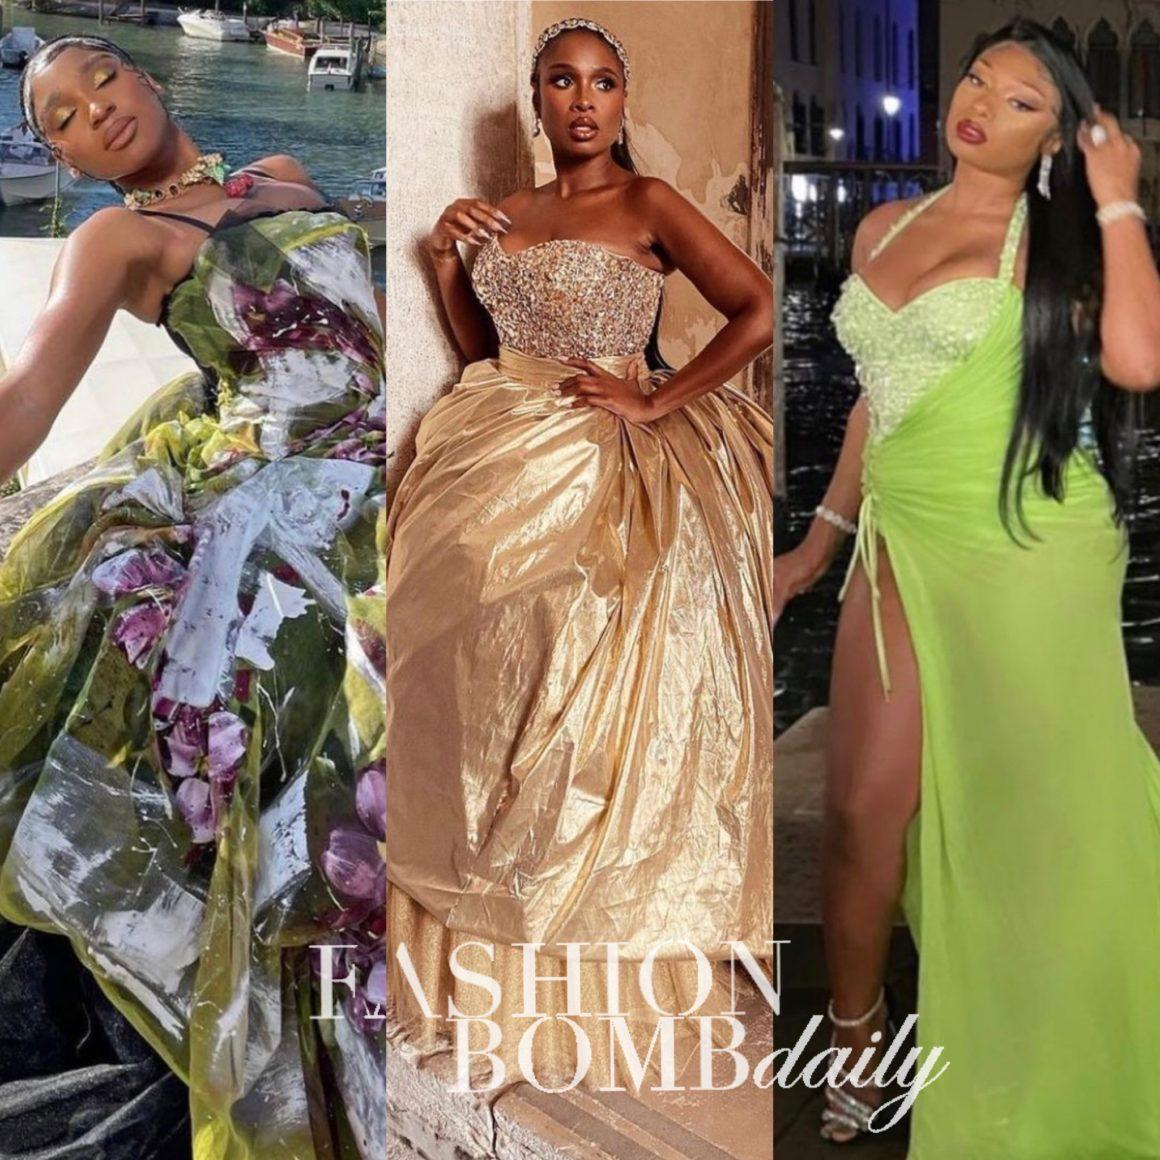 Dolce and Gabbana Debuts Atla Moda Collection With Runway Show in Venice, Italy With Appearances by Megan Thee Stallion, Doja Cat, Normani, the Combs Sisters, and More